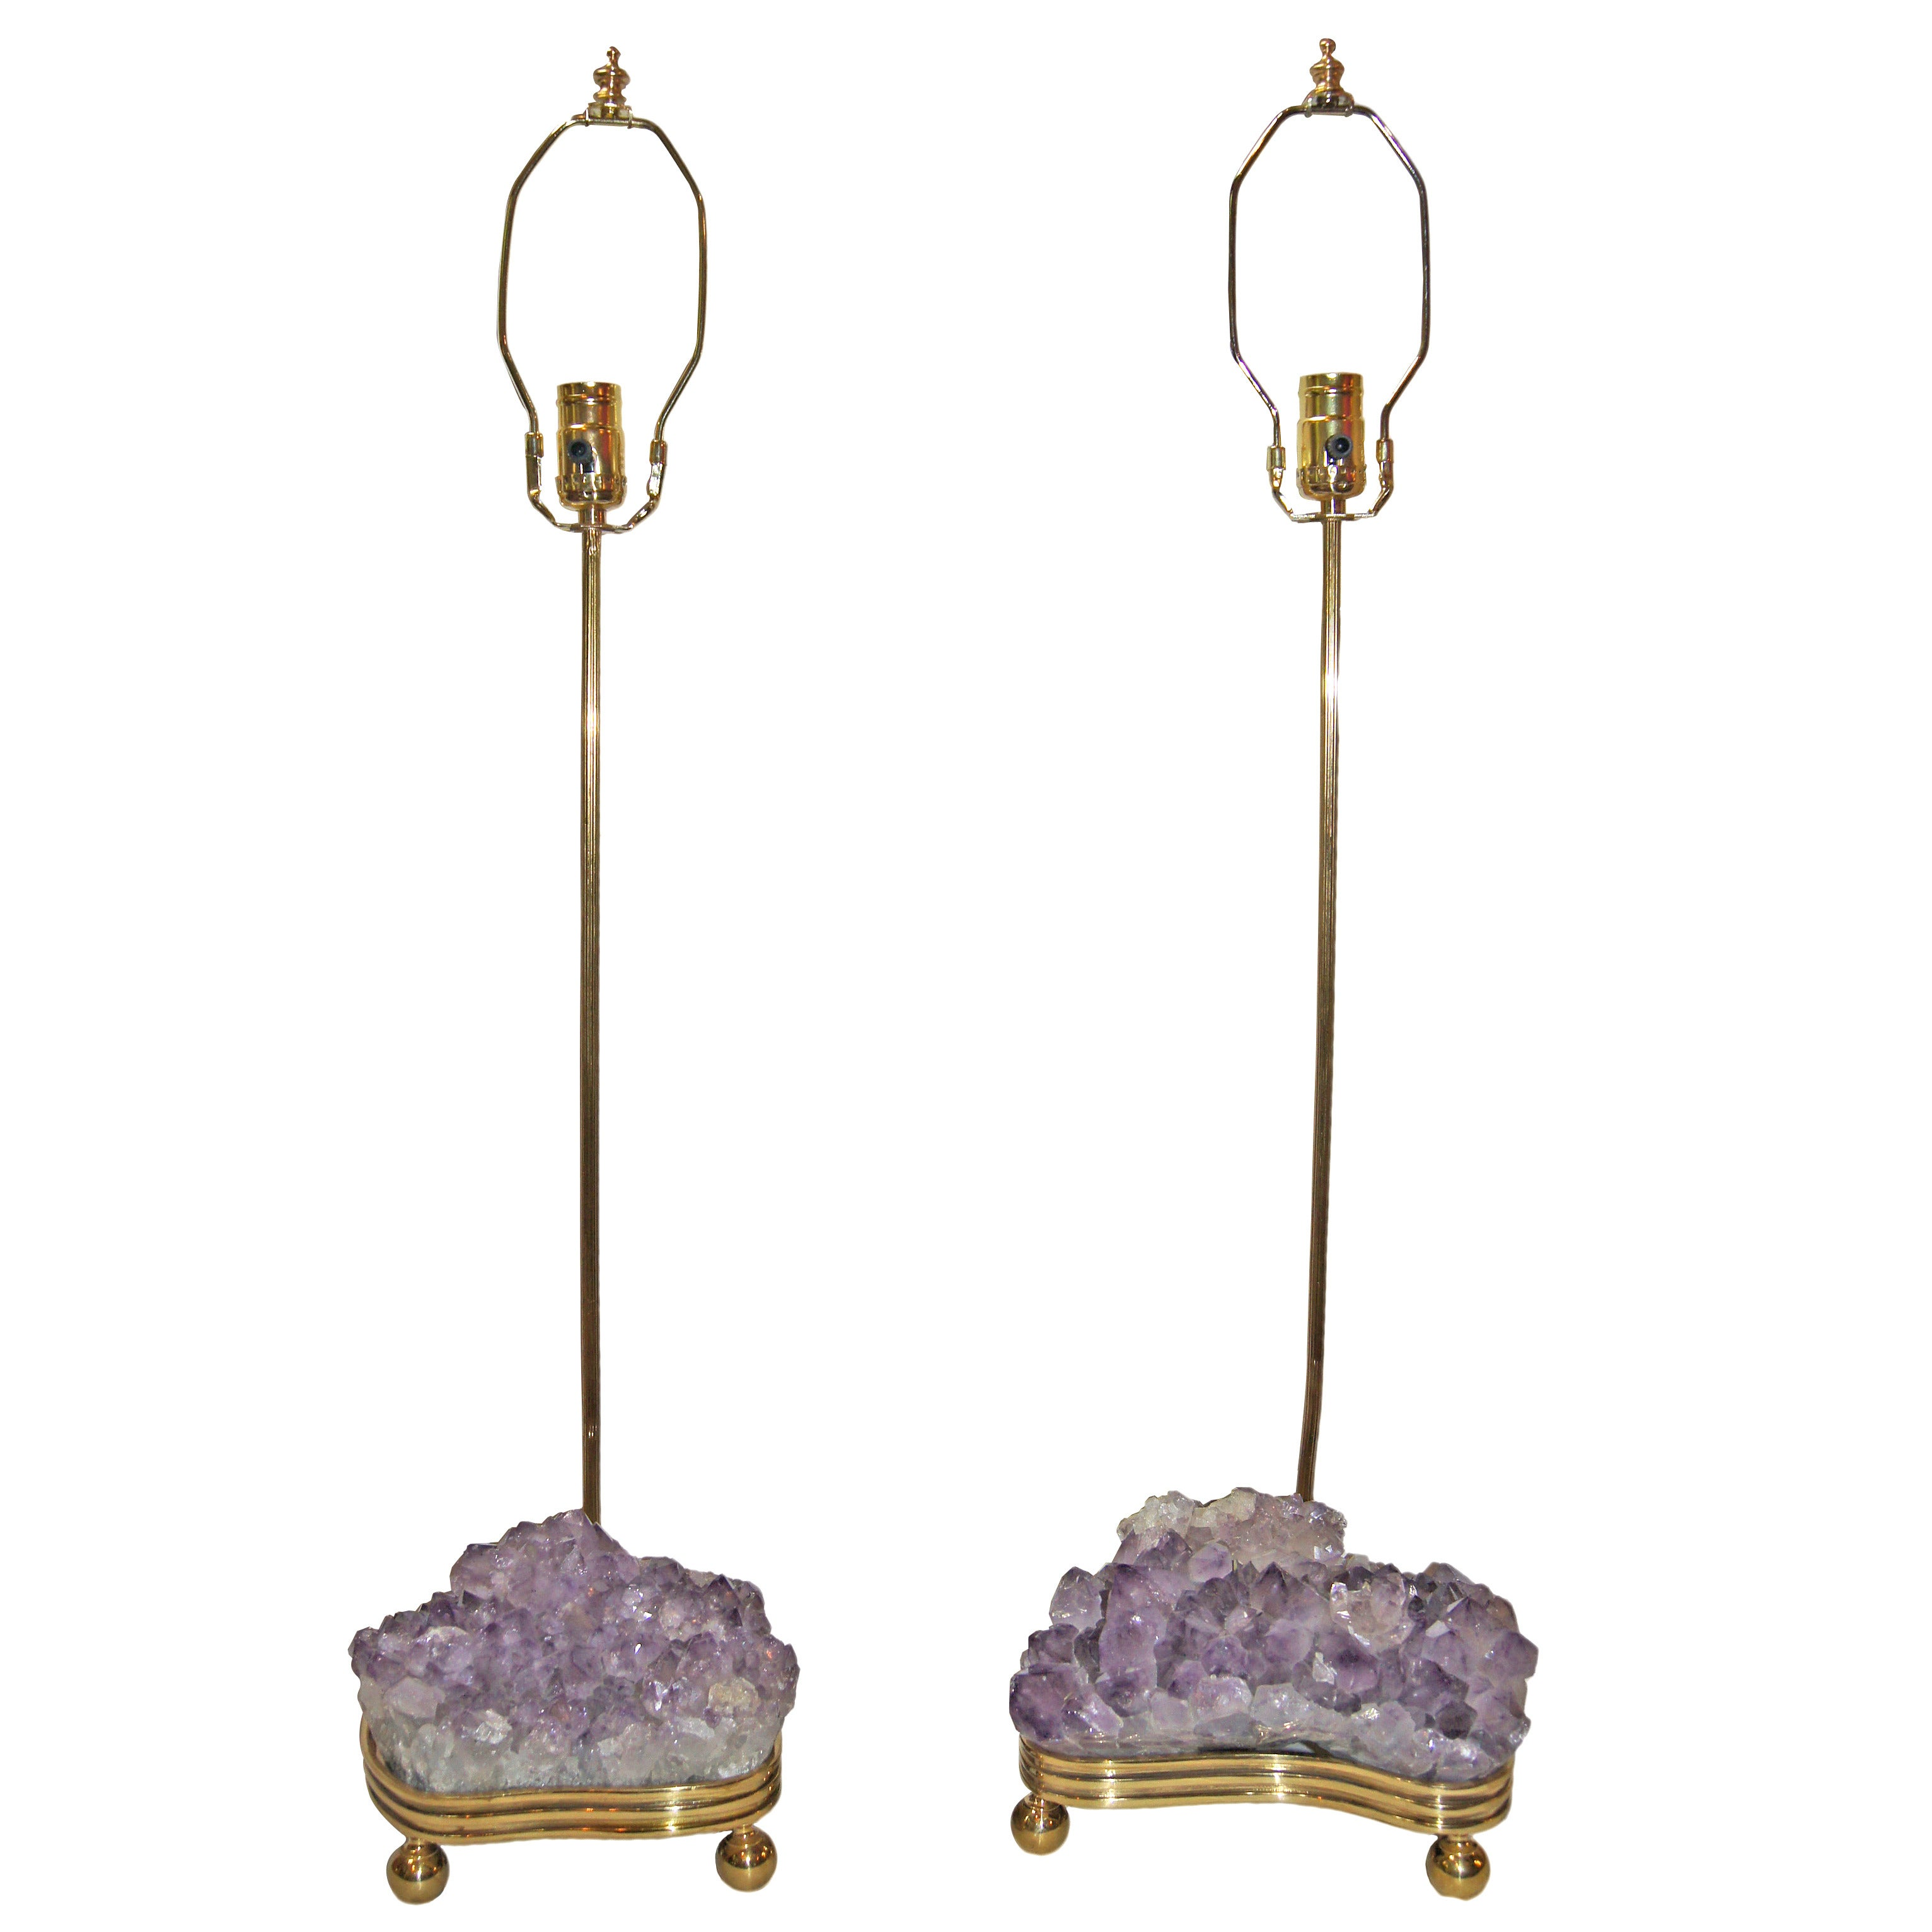 Pair of Amethyst Table Lamps